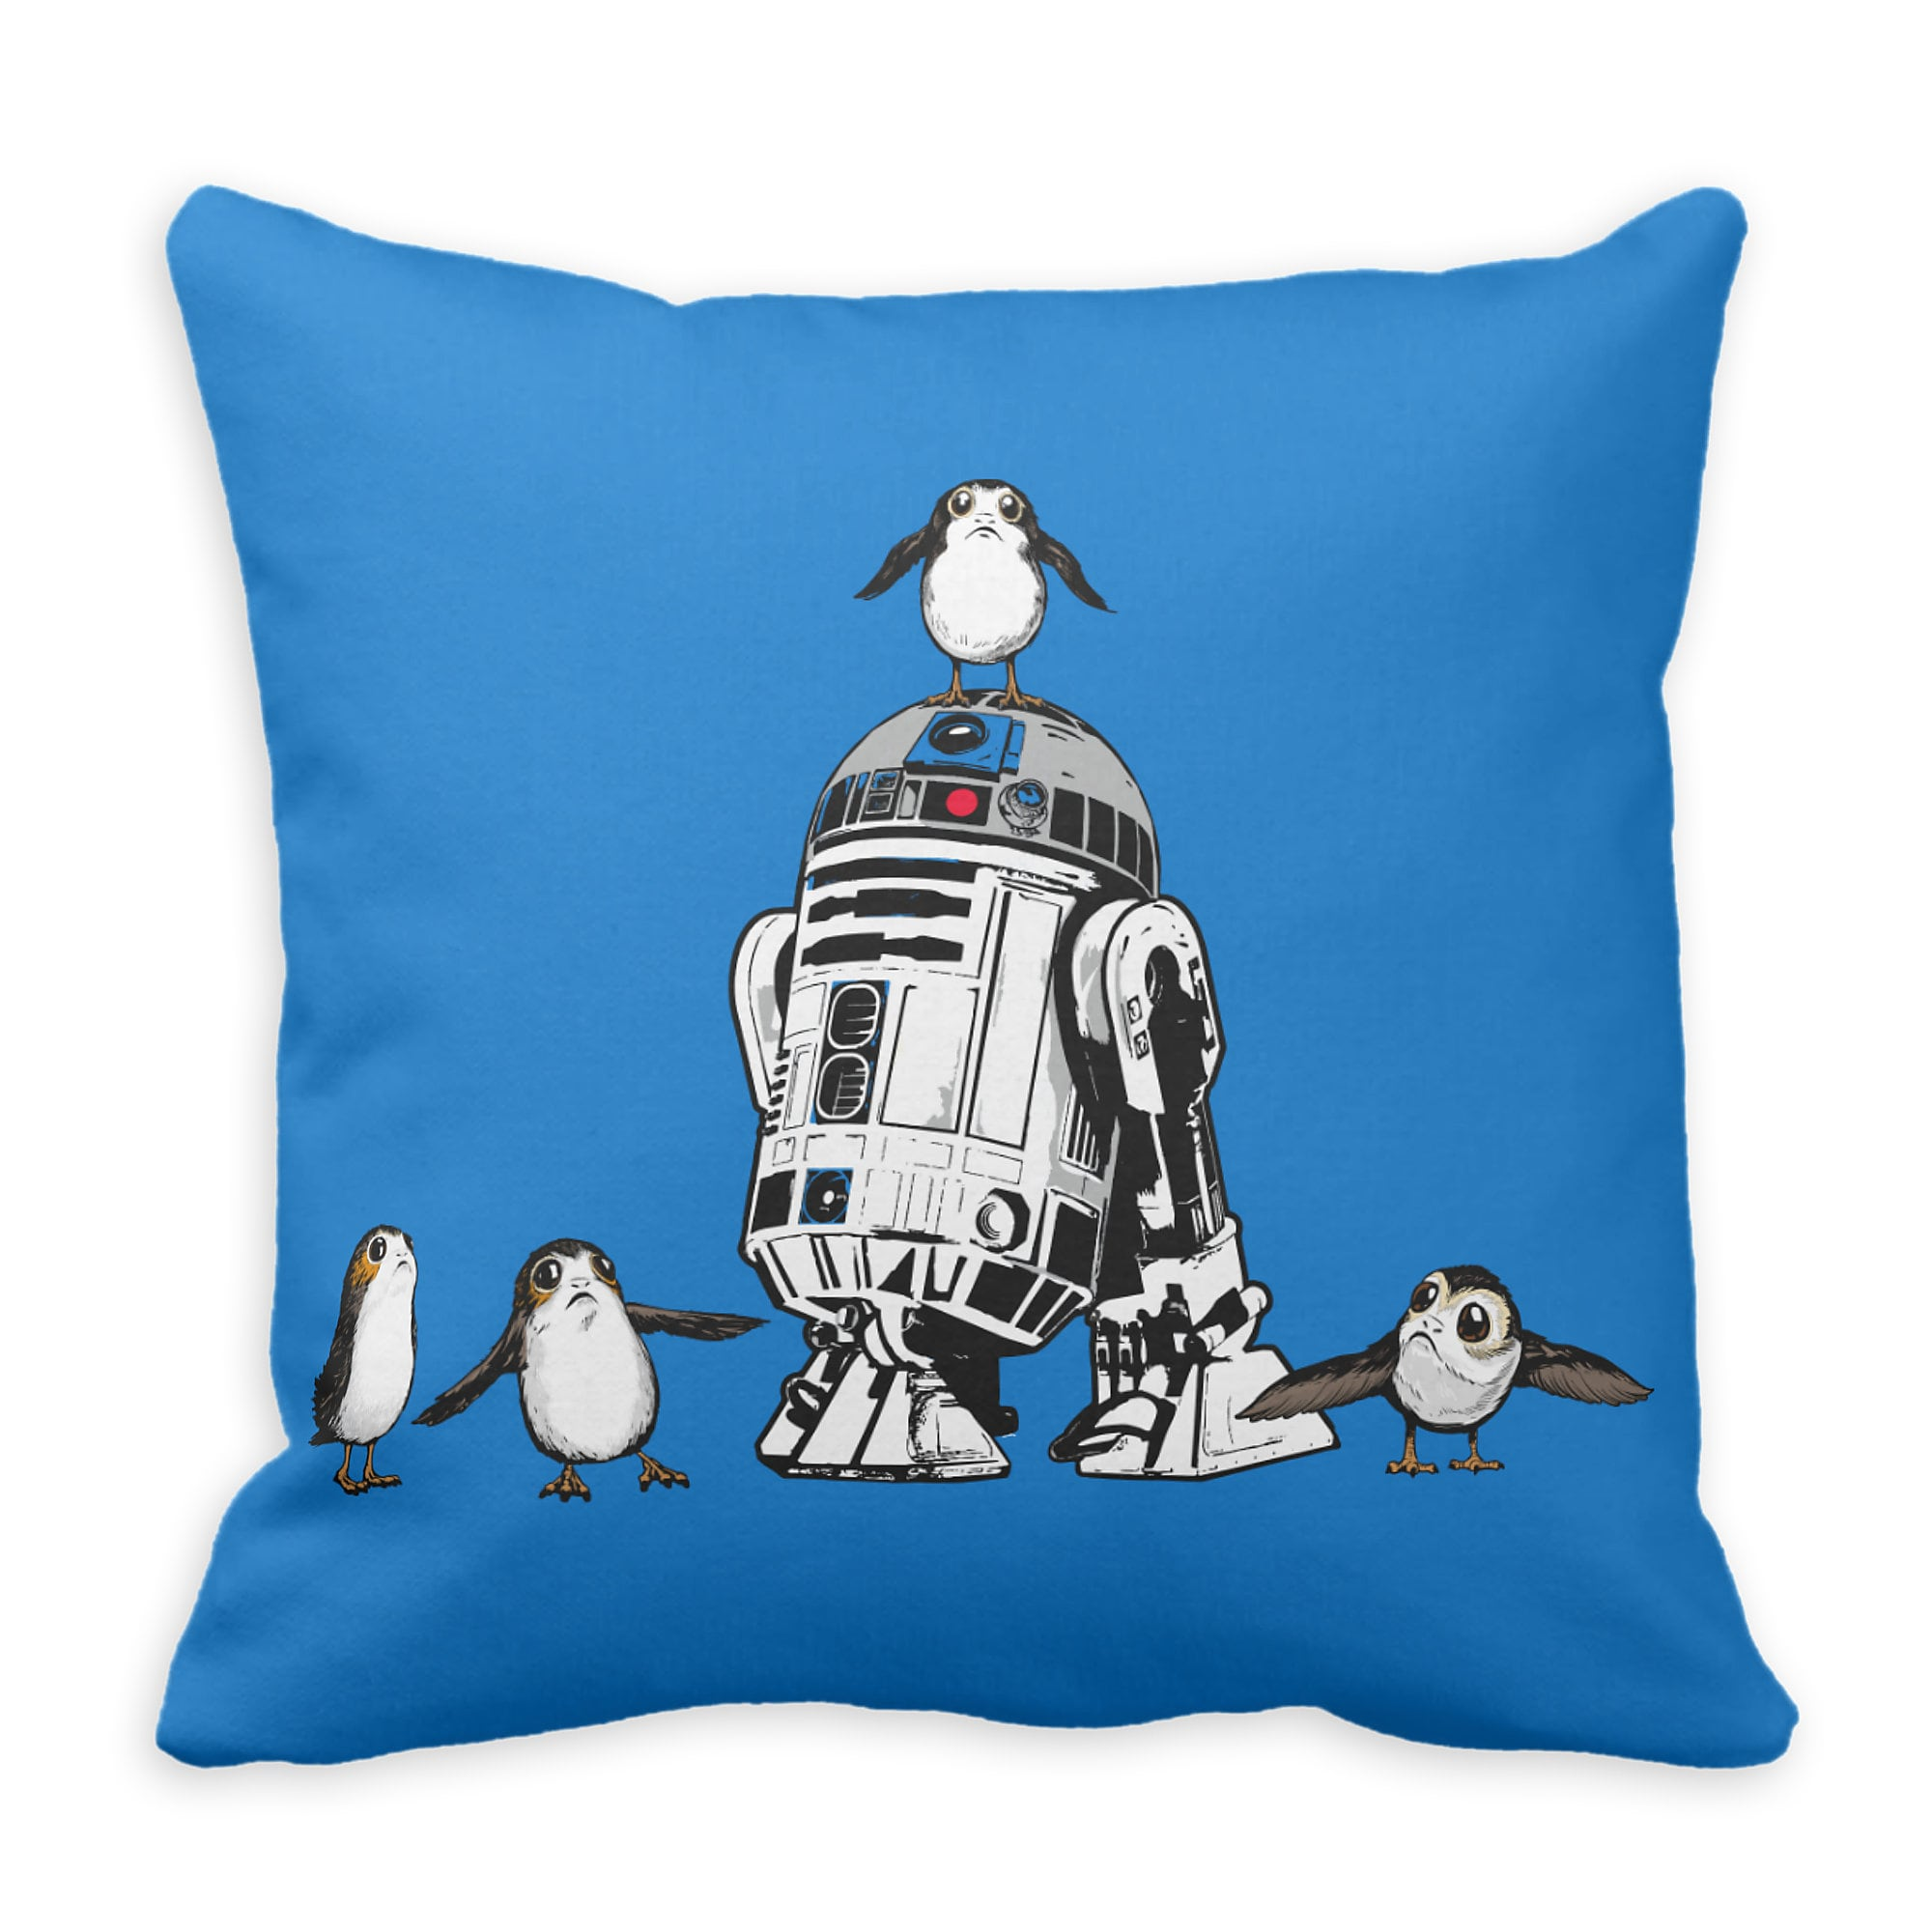 R2-D2 and Porgs Pillow - Star Wars: The Last Jedi - Customizable